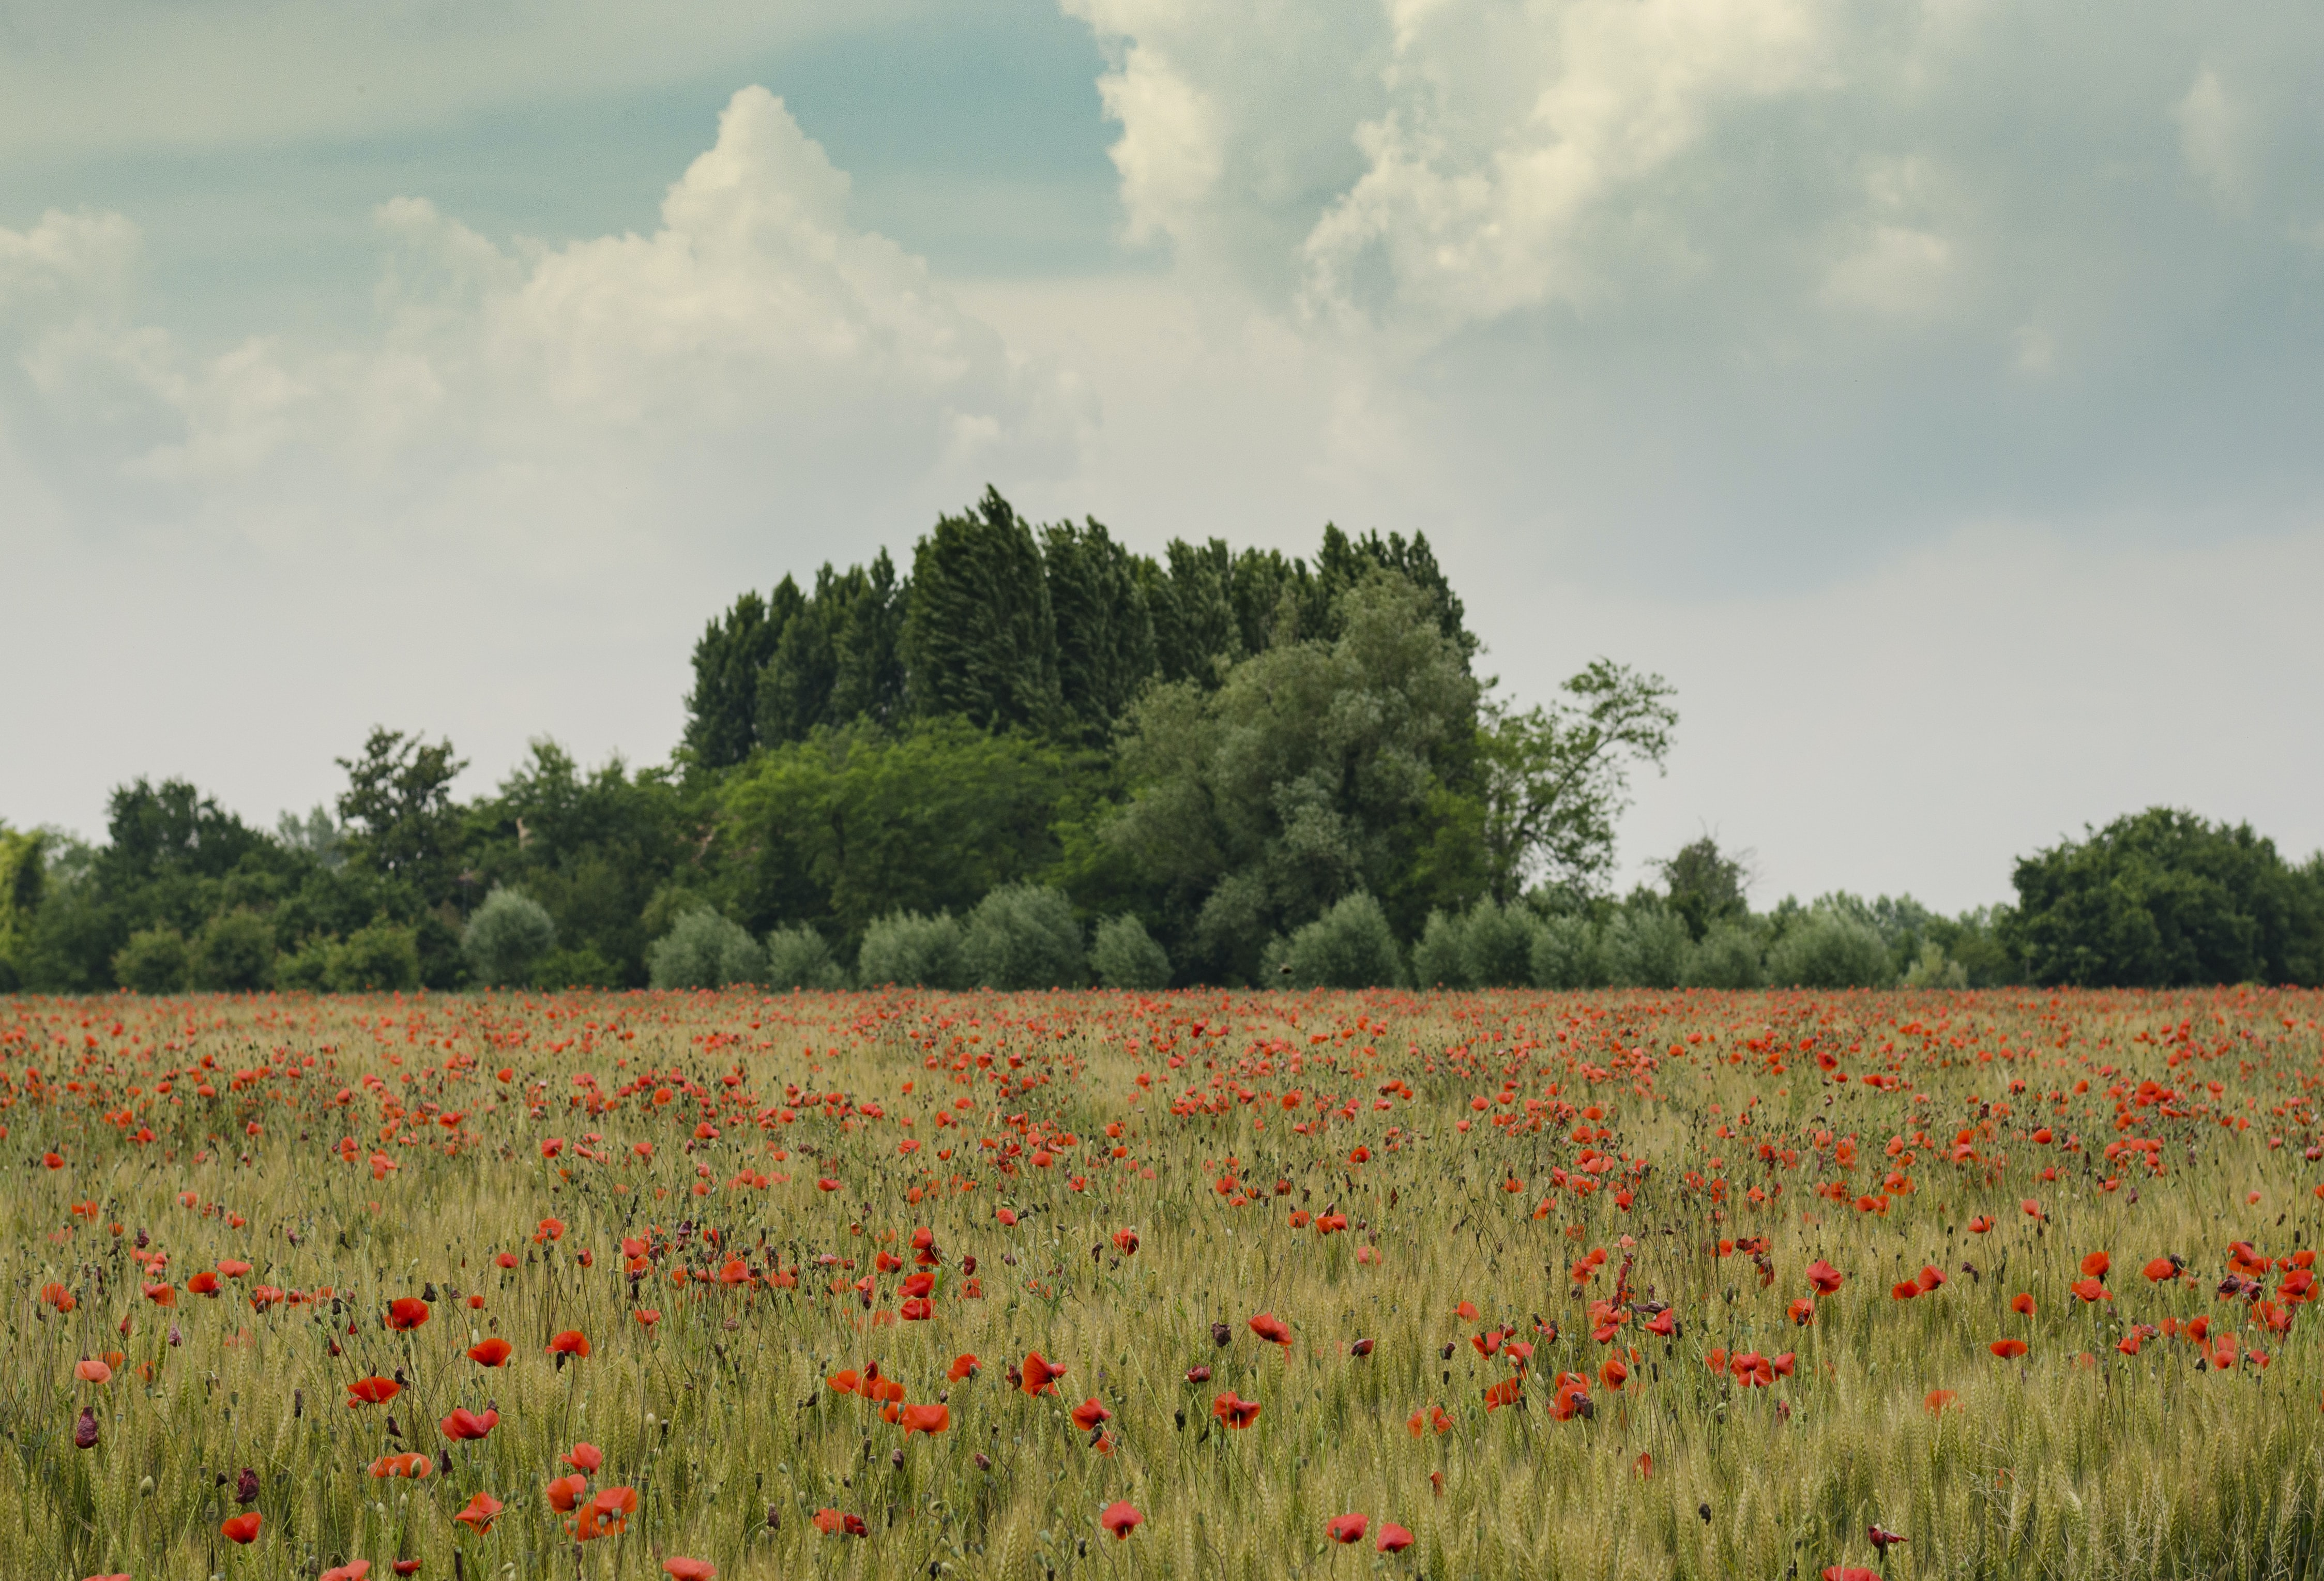 Wide angle shot of a poppy field.